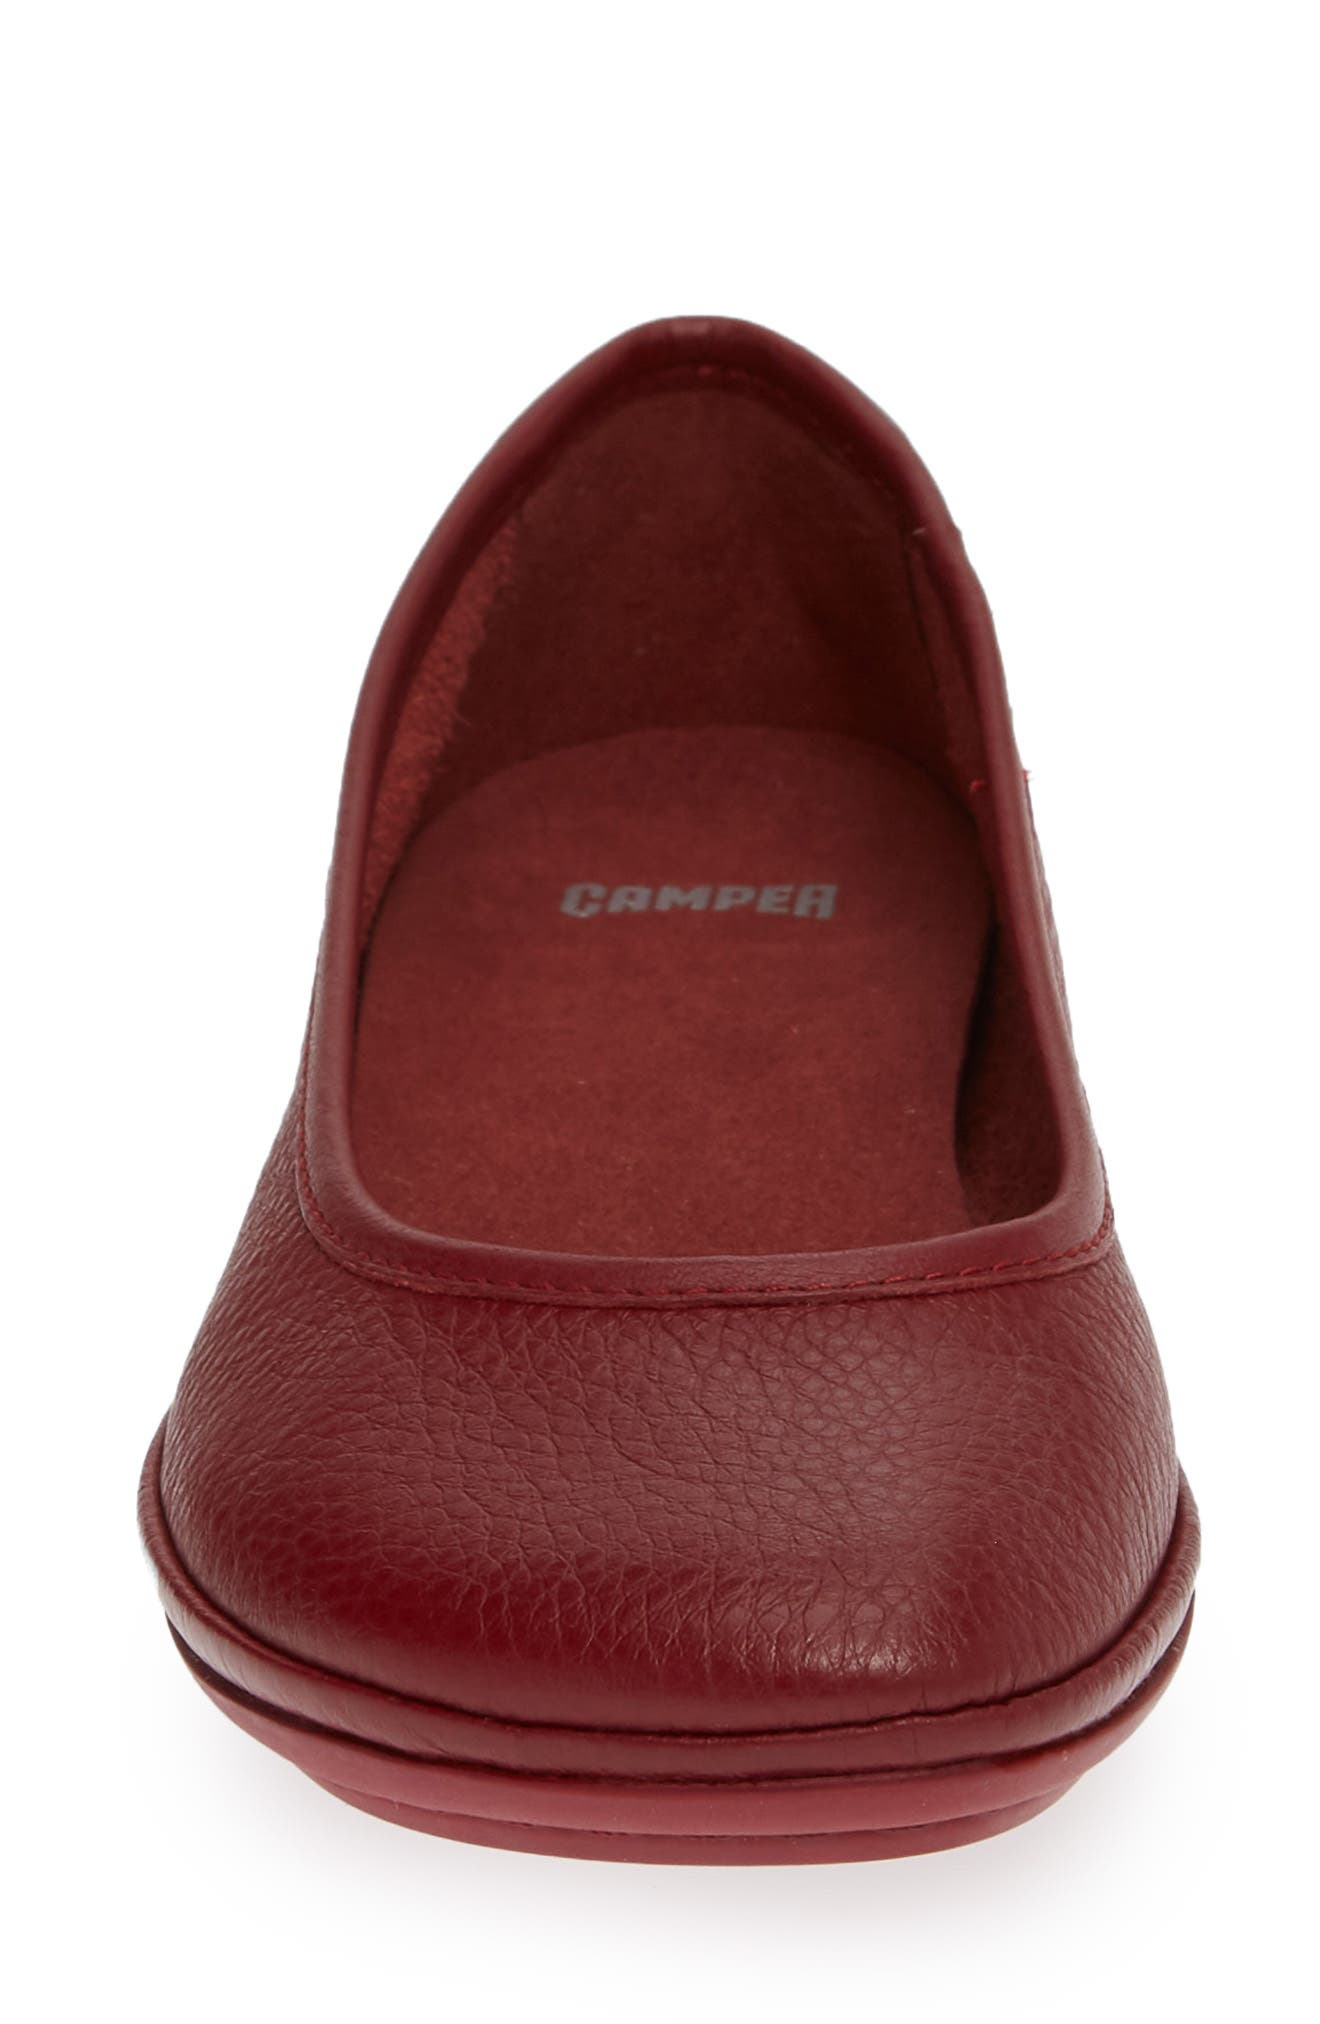 Right Nina Ballet Flat,                             Alternate thumbnail 4, color,                             RED LEATHER